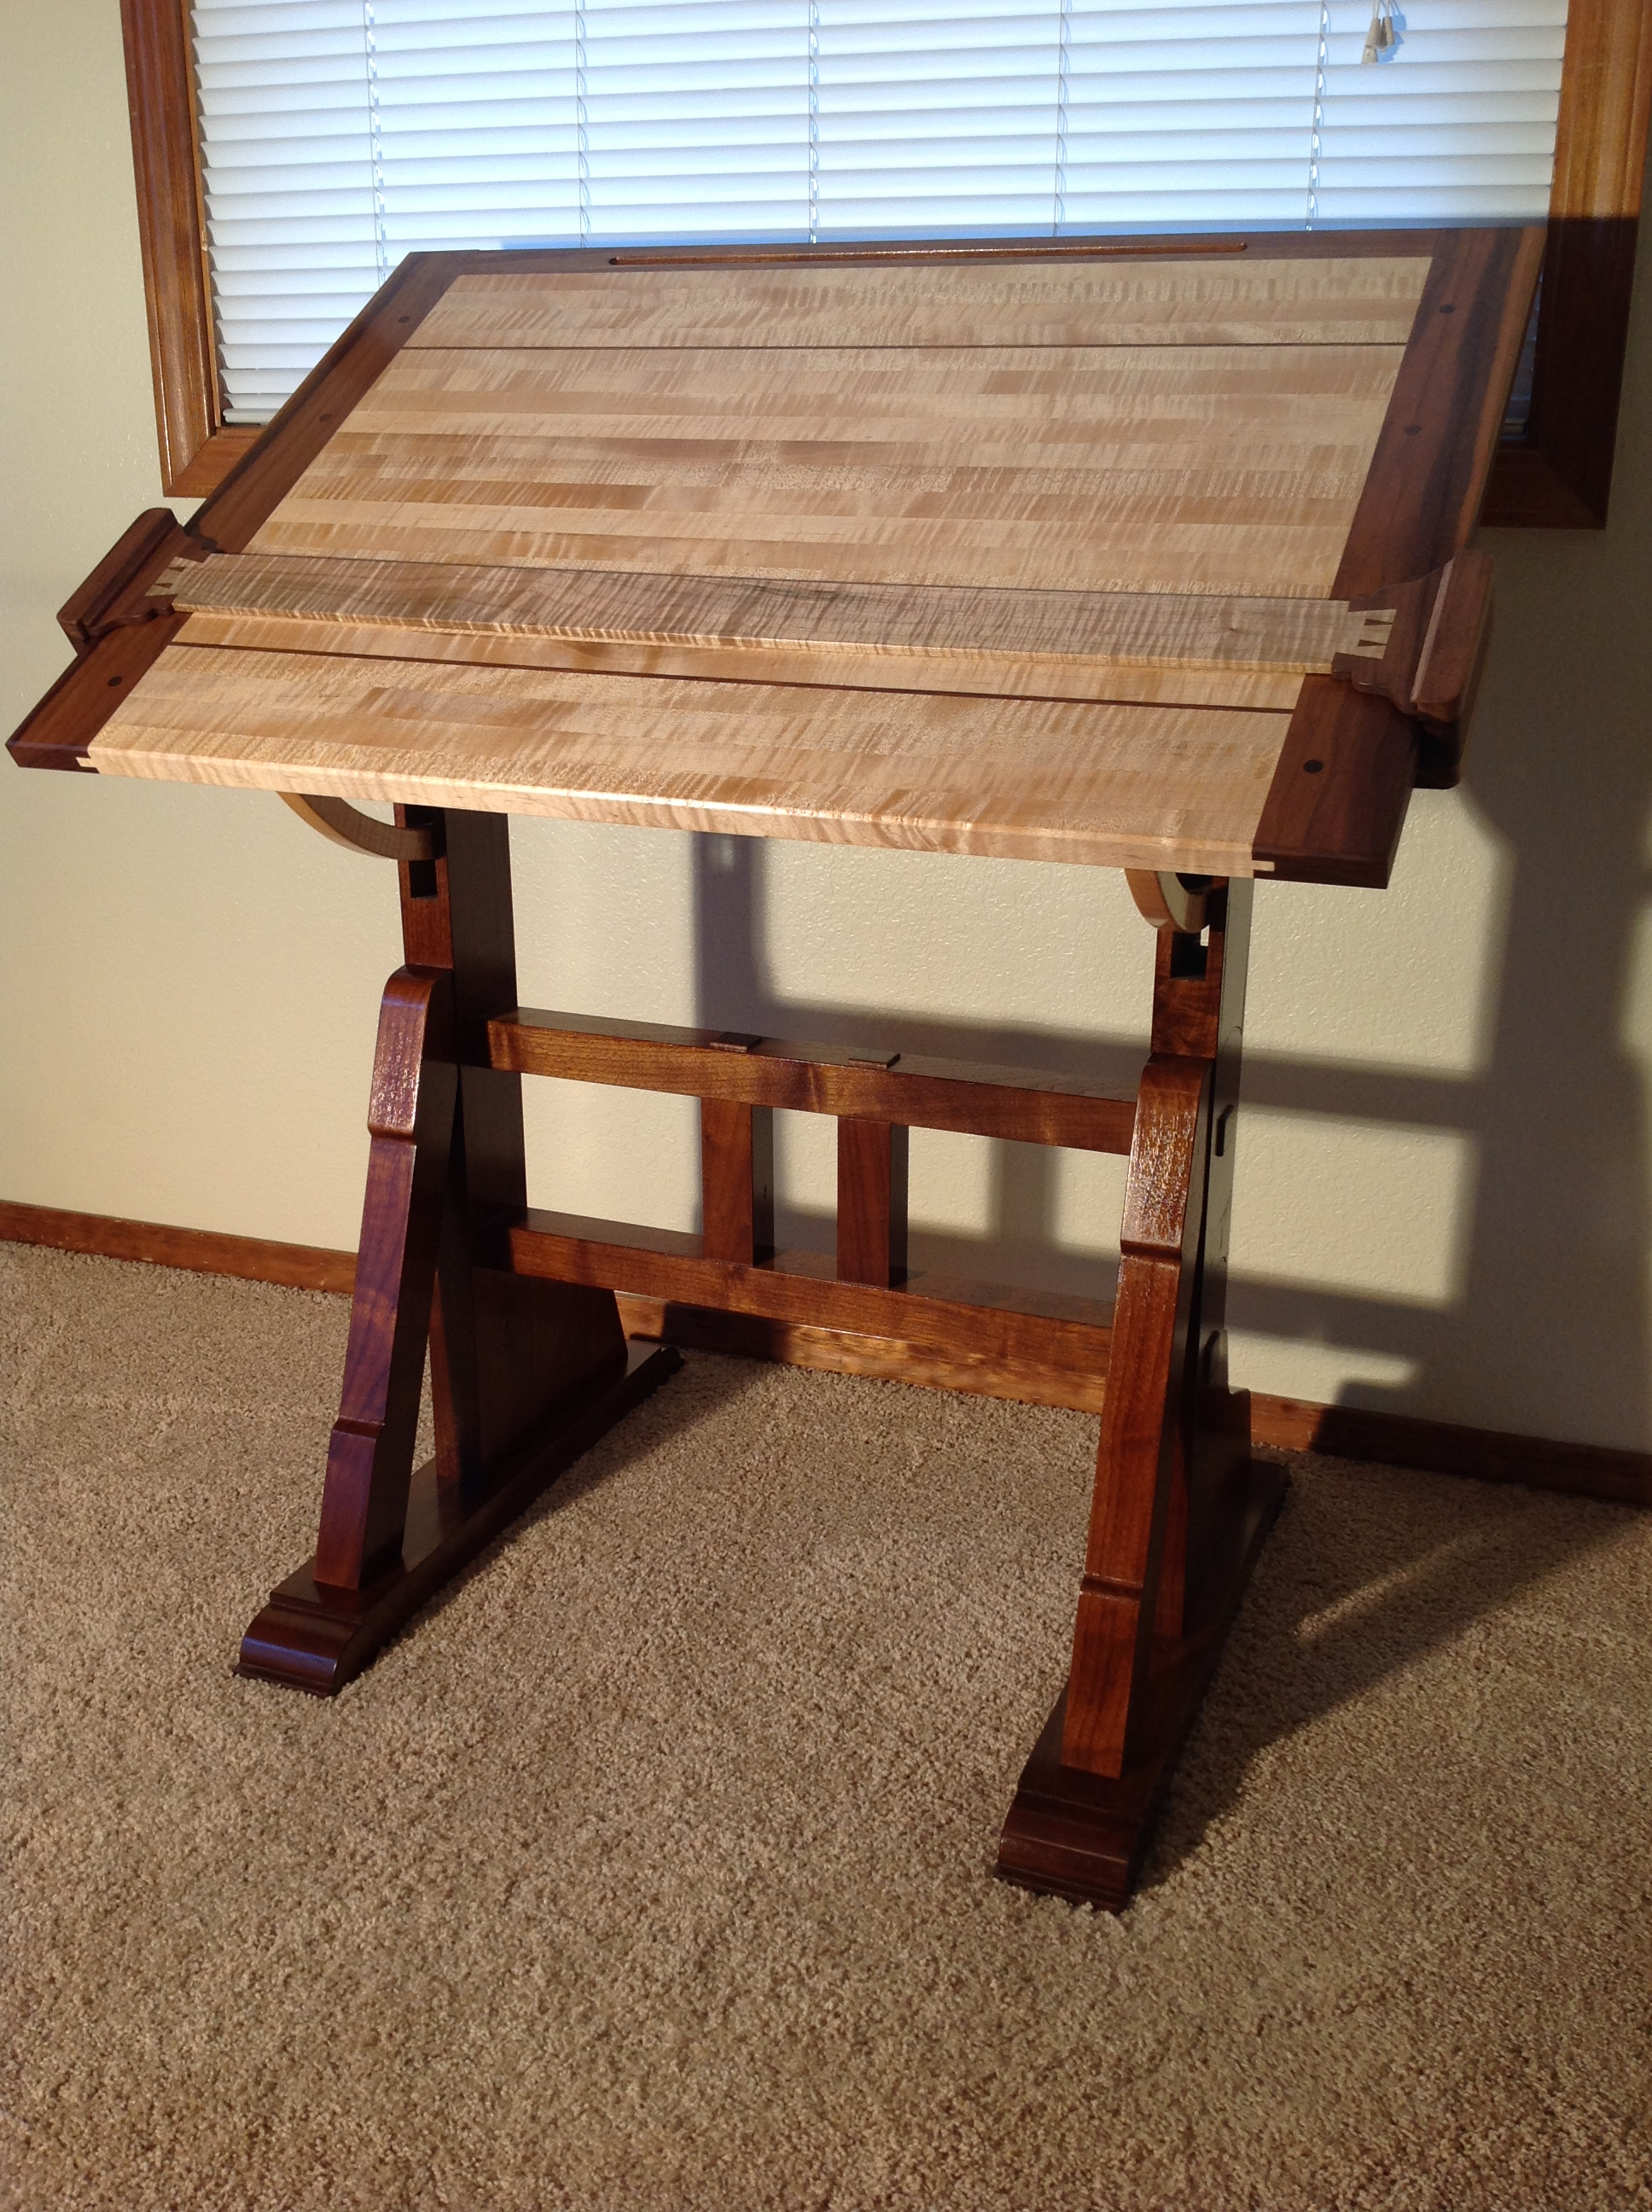 An architect 39 s table in idaho the unplugged woodshop toronto for Diy architectural drawings